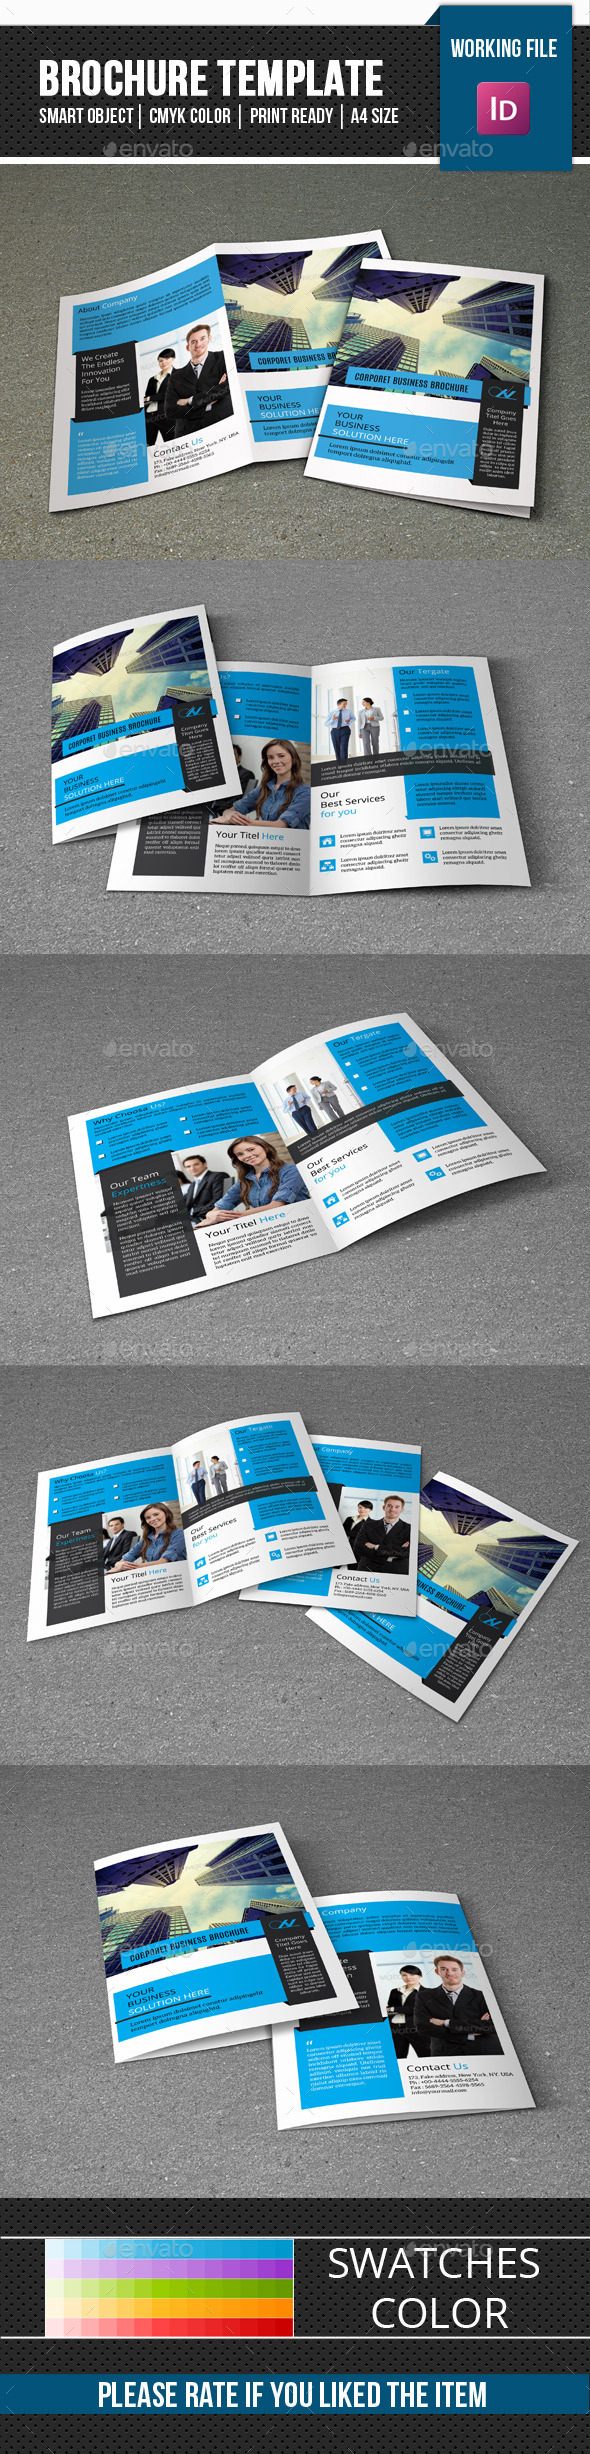 Business Brochure Template-v278 - Corporate Brochures